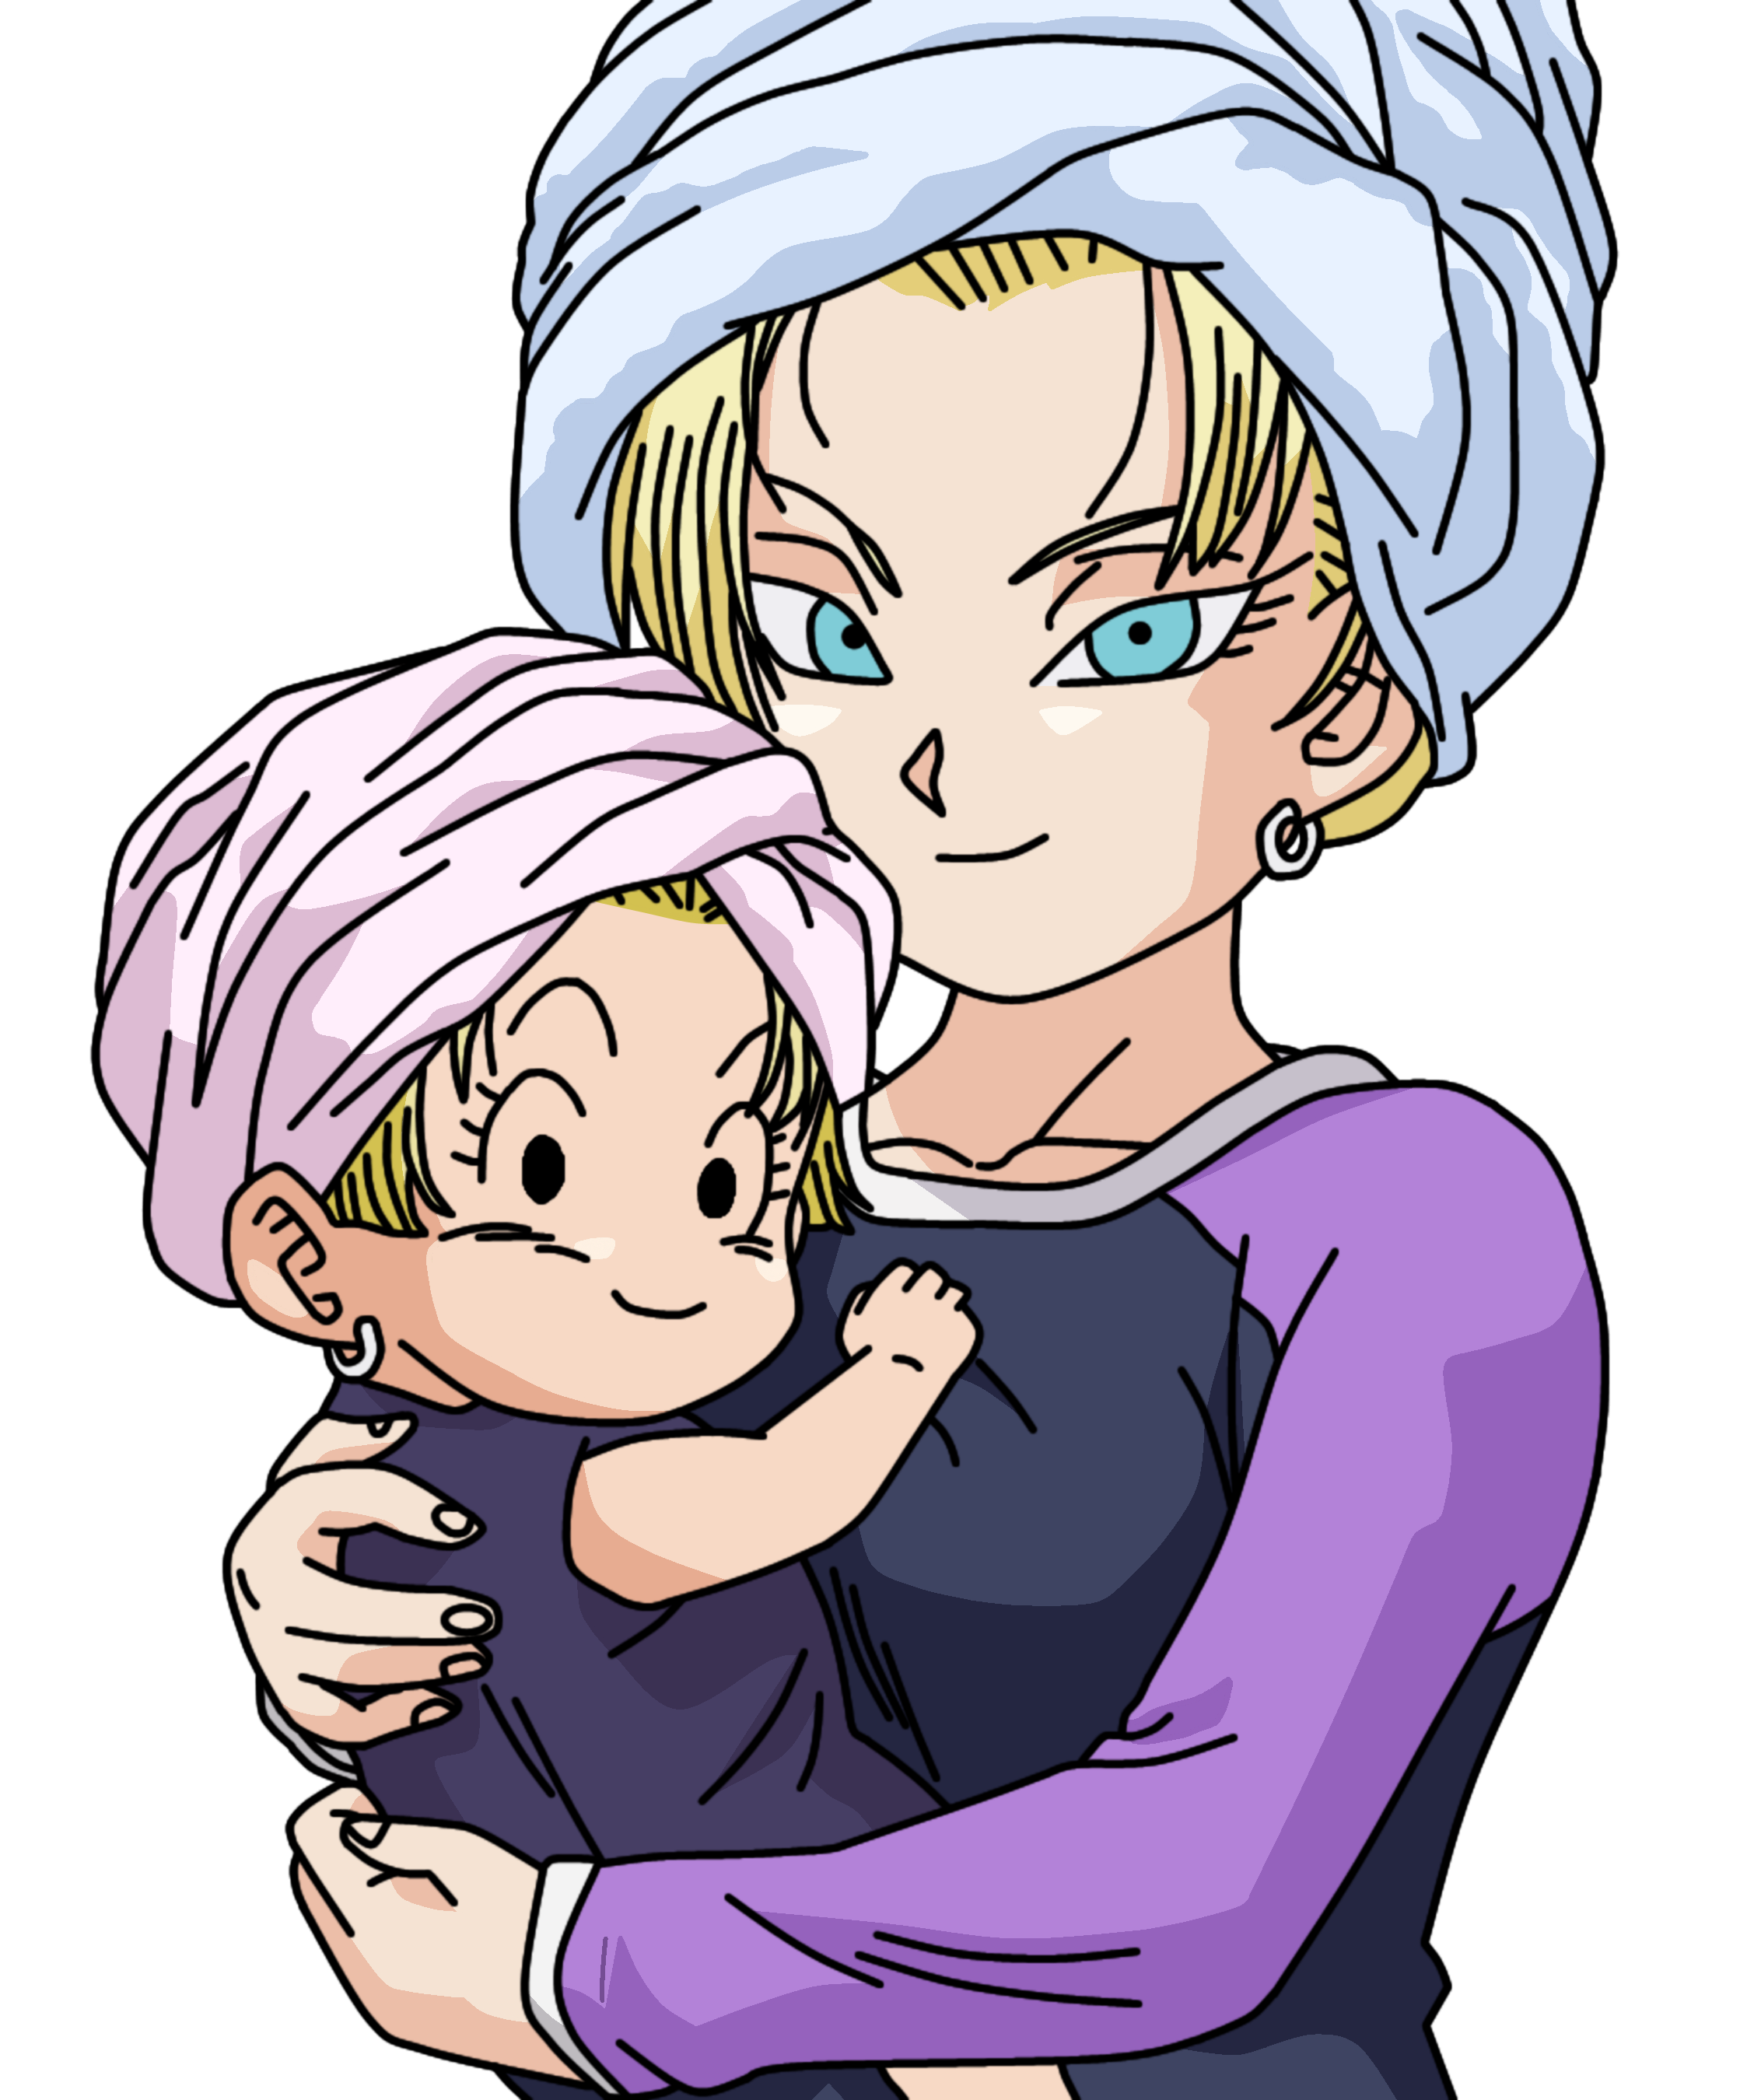 Dragonball marron and c18 lineart farbig by wallpaperzero on deviantart - Dragon ball z c18 ...